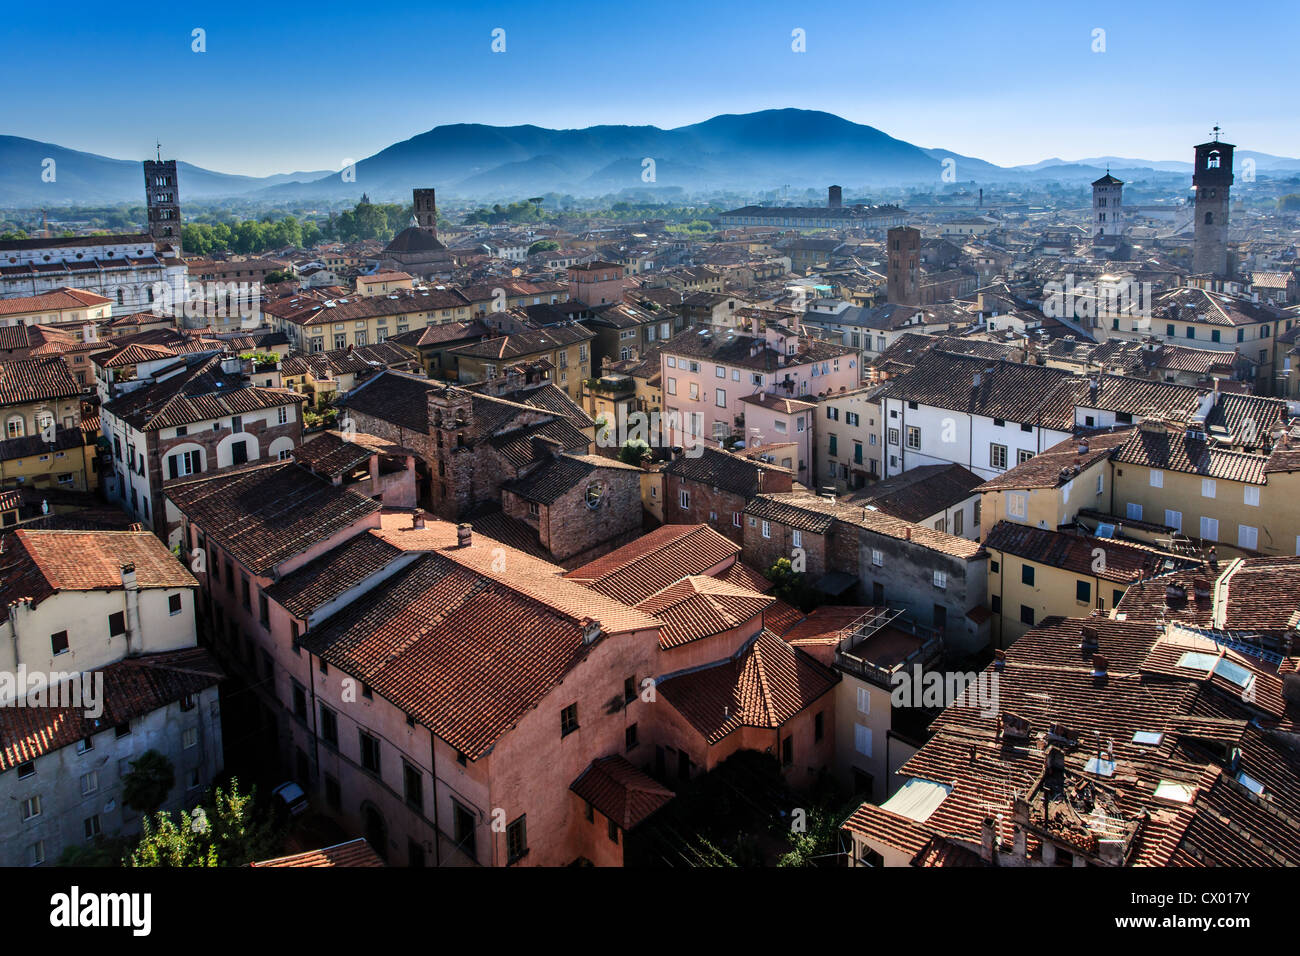 The roofs of Lucca as seen from Torre Guinigi in Tuscany, Italy, Europe - Stock Image